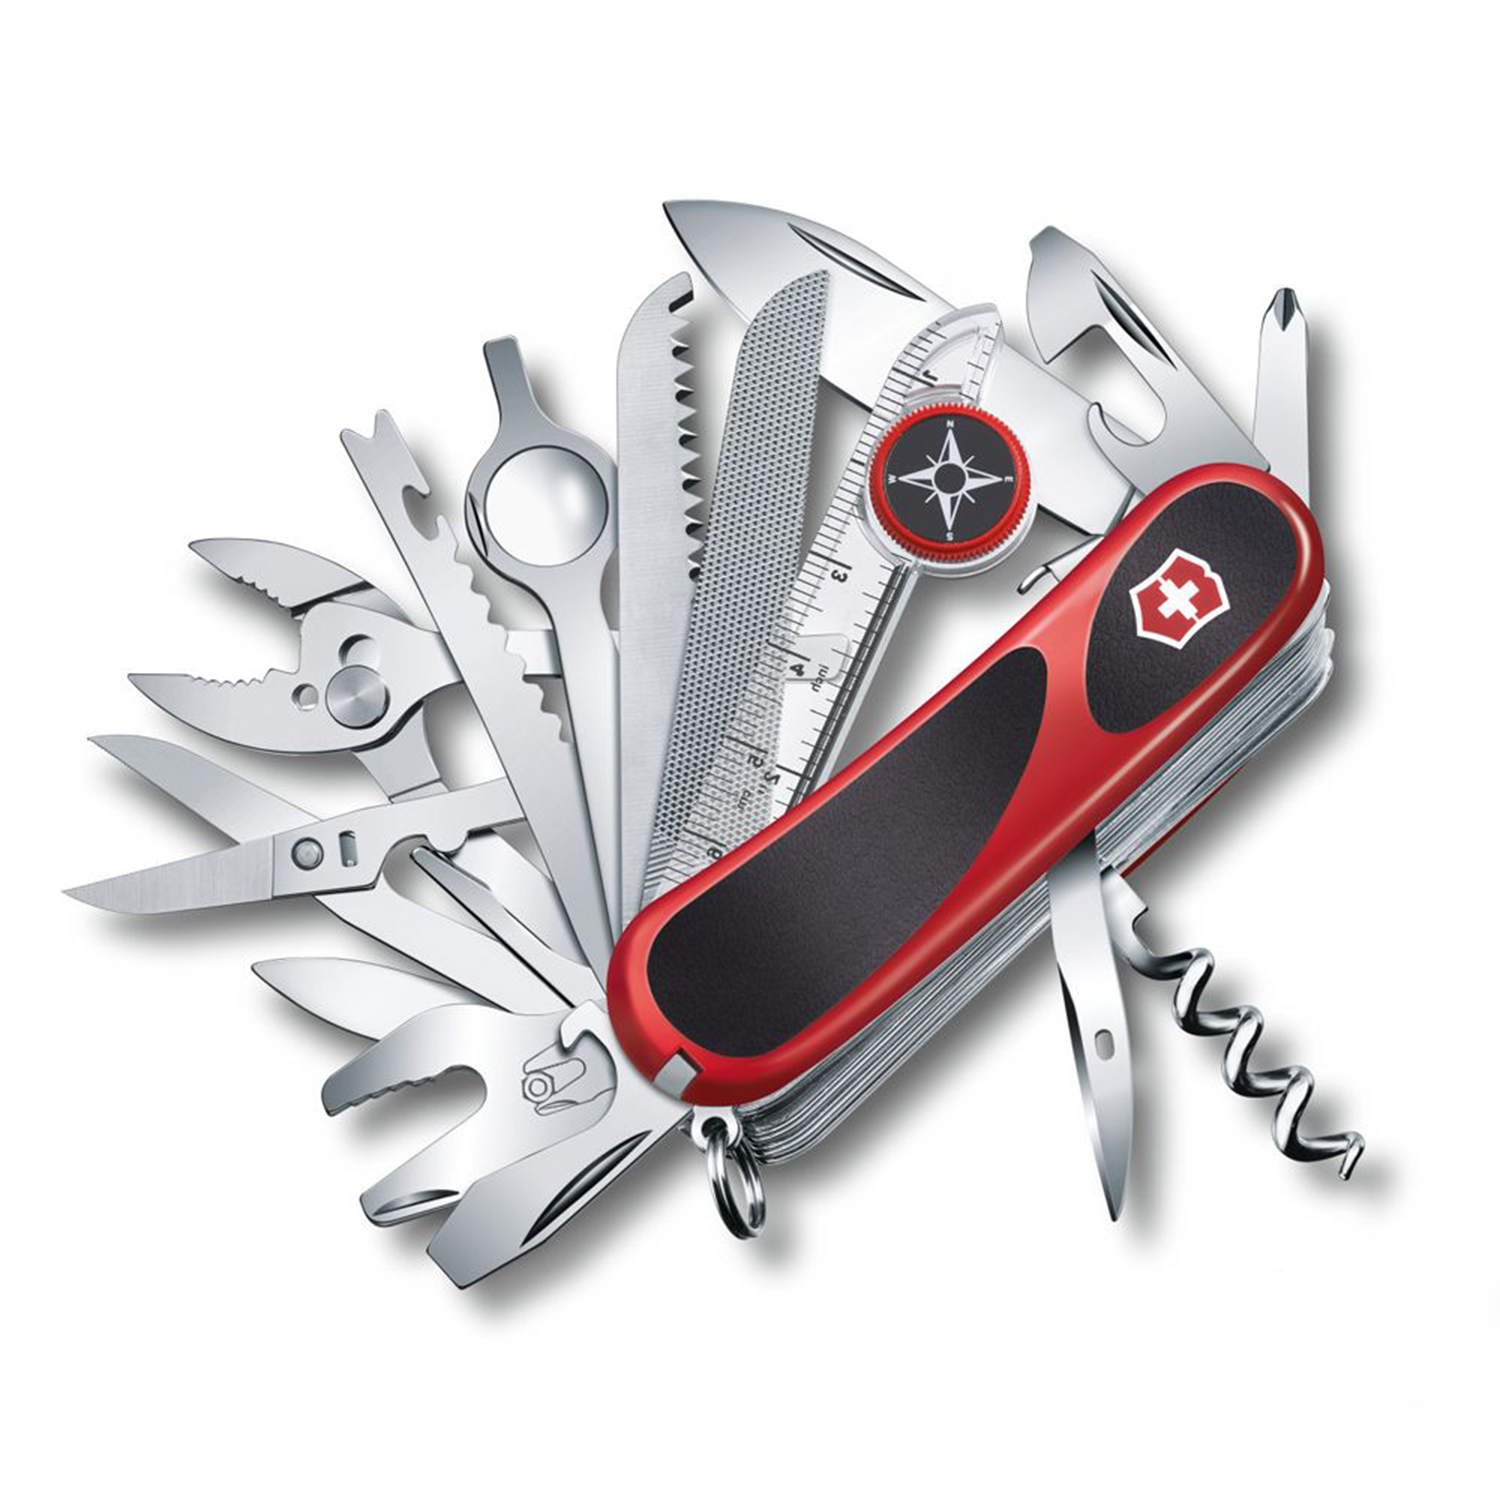 Click here to buy Swiss Army Knife Victorinox EvoGrip S54 Pocket Multi Tool Red Black by Victorinox Swiss Army.